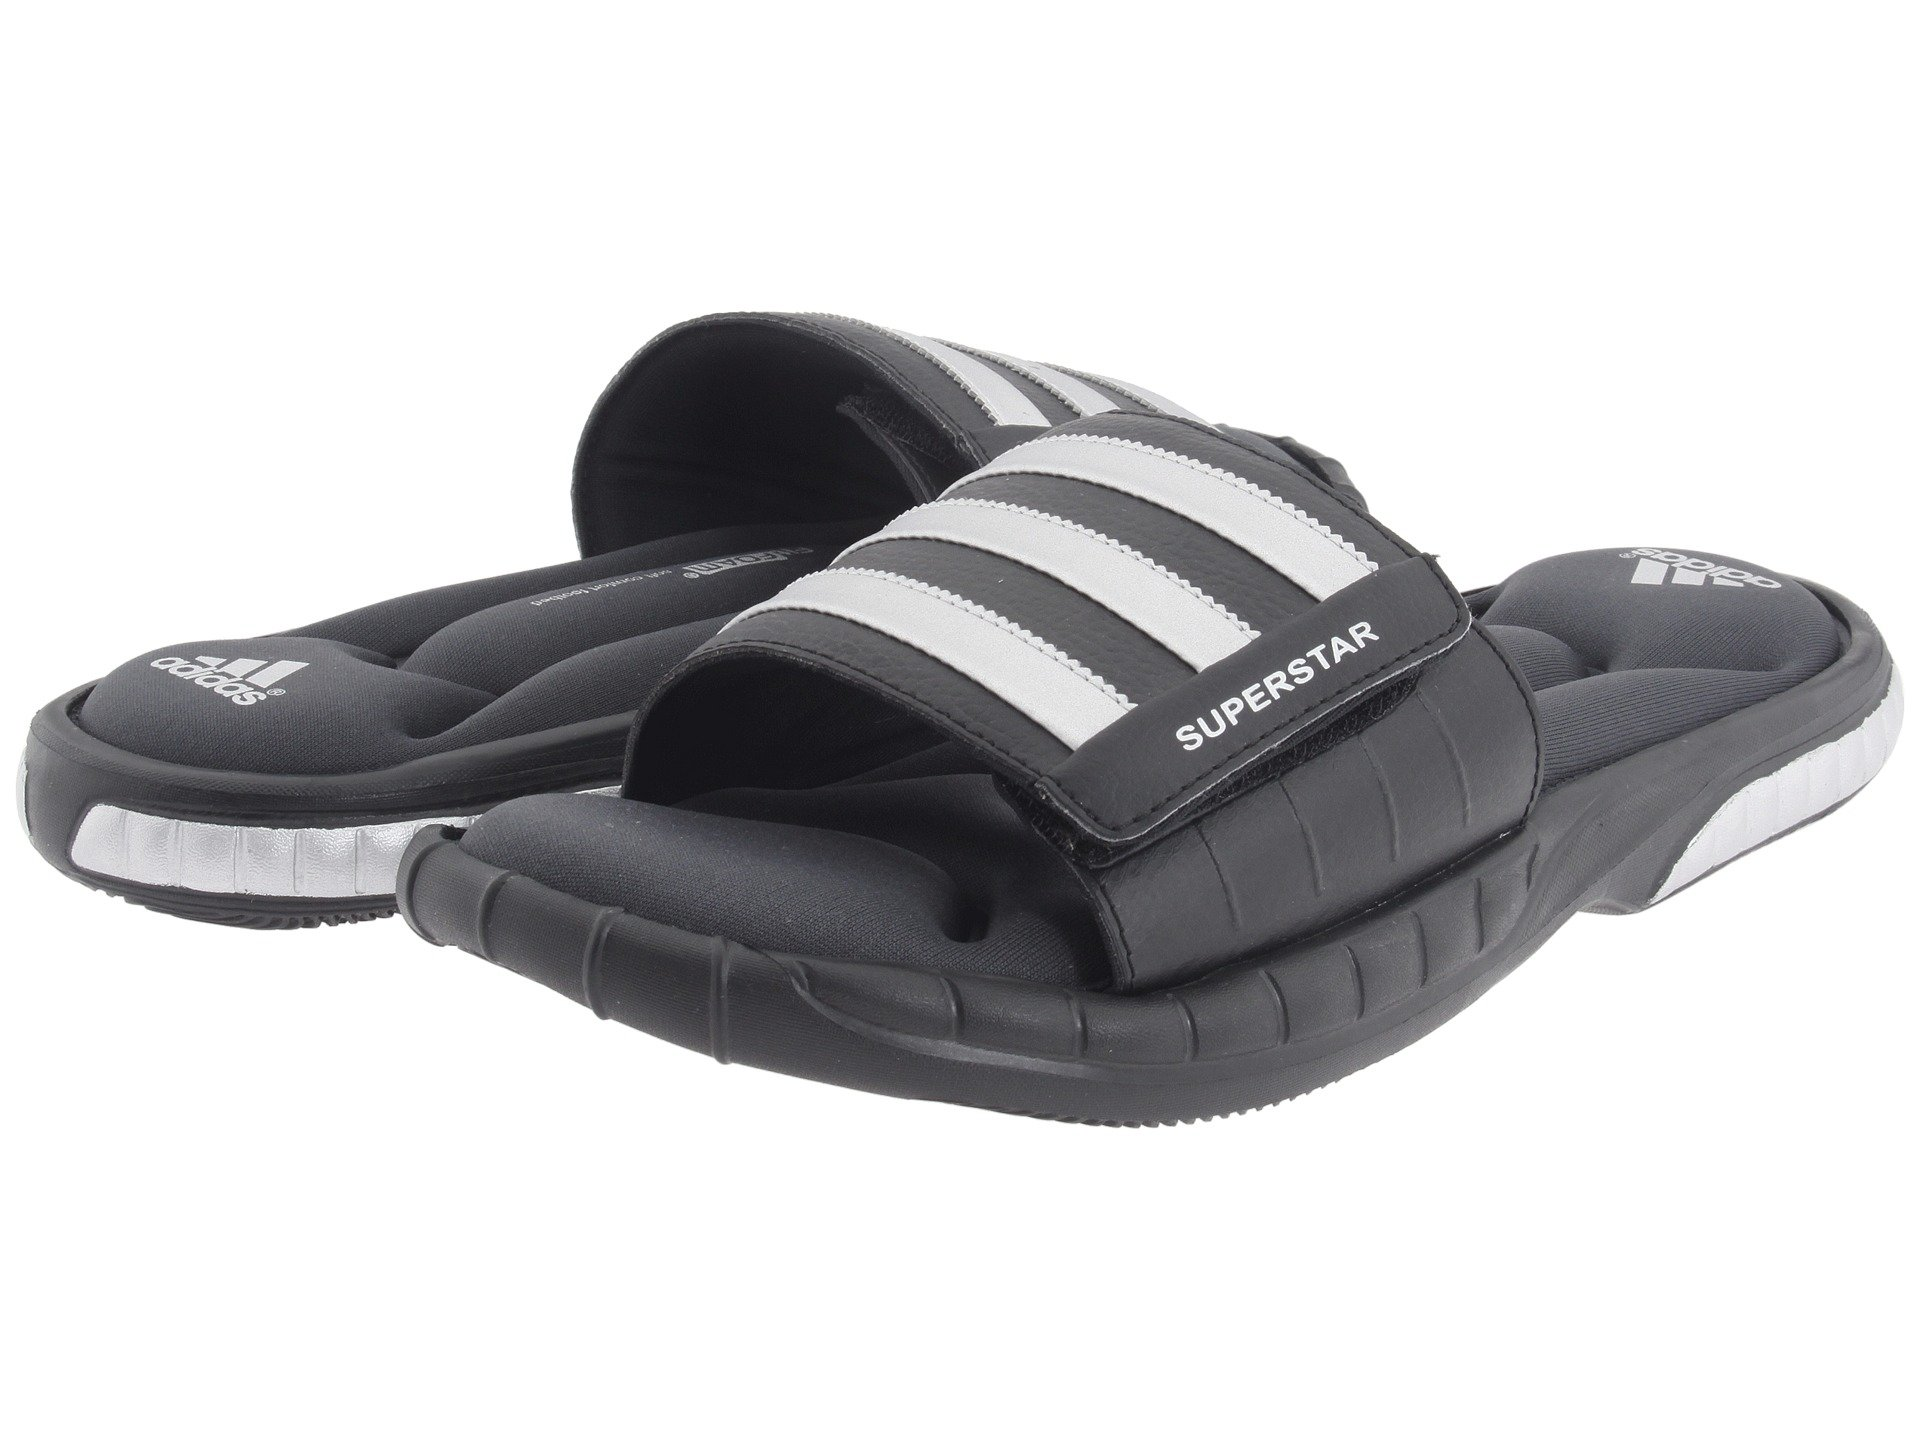 342a3d86454102 adidas superstar 2g slides